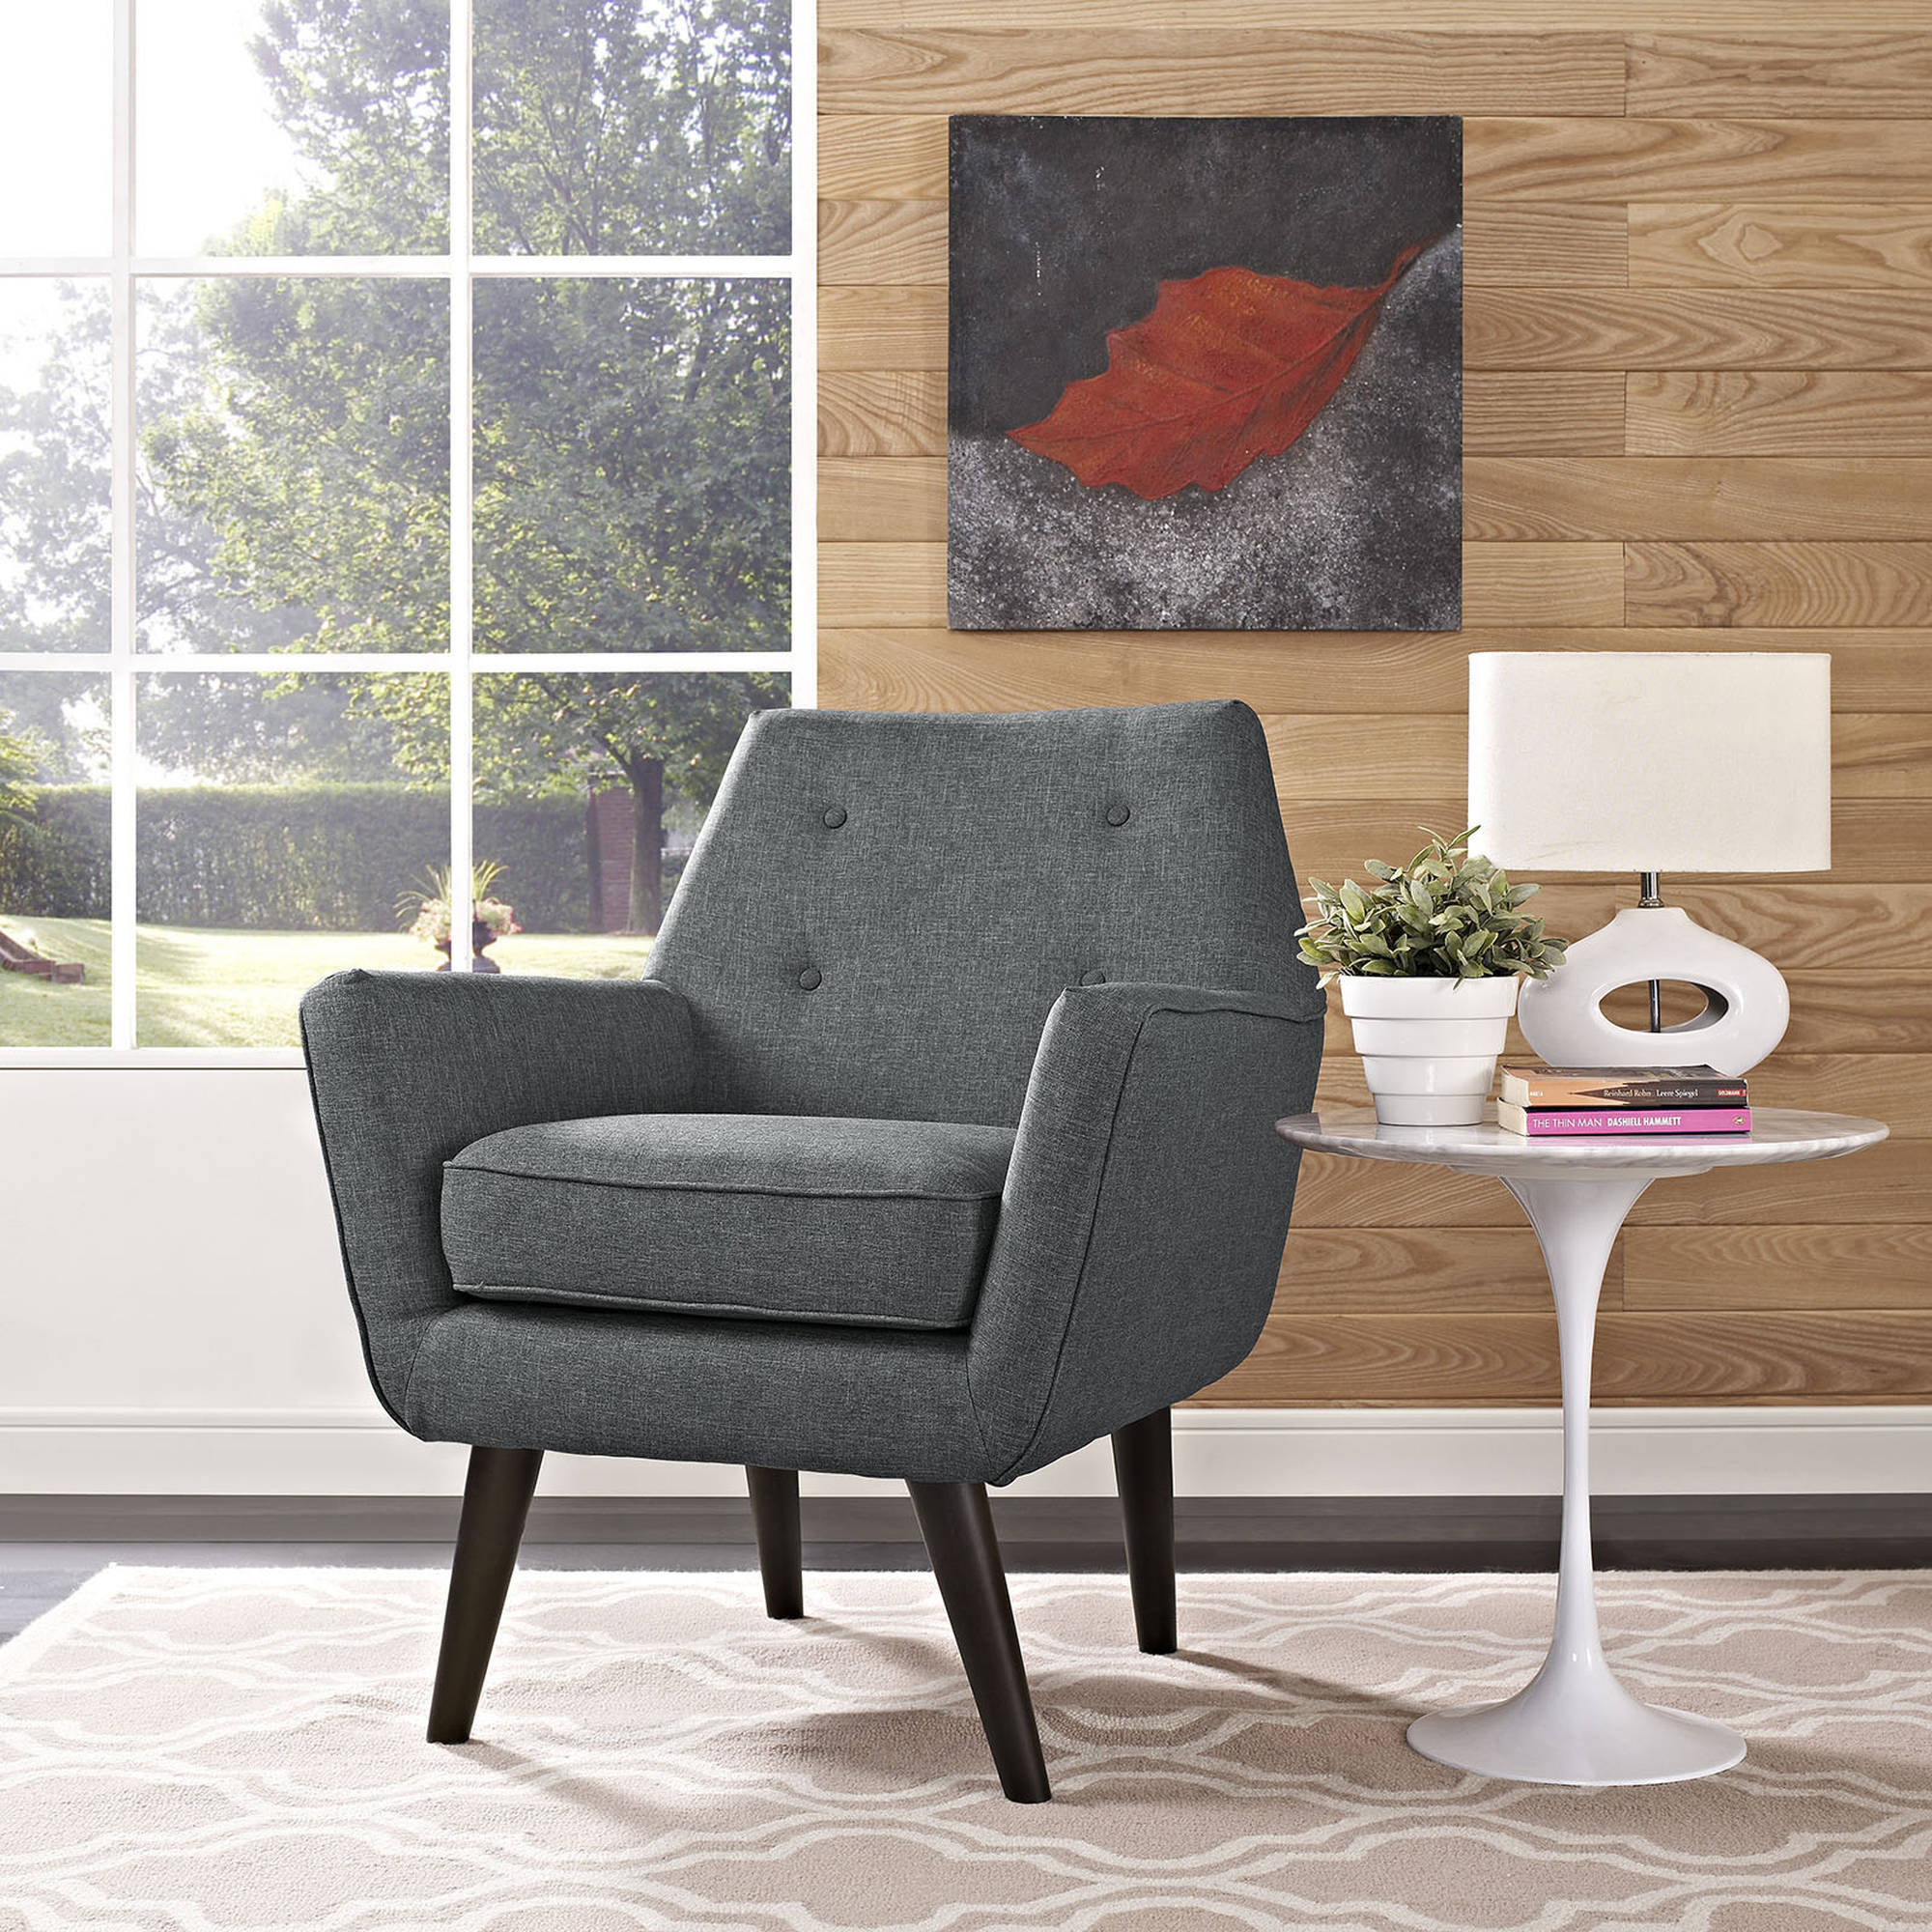 Modway Posit Modern Upholstered Armchair, Multiple Colors by Modway